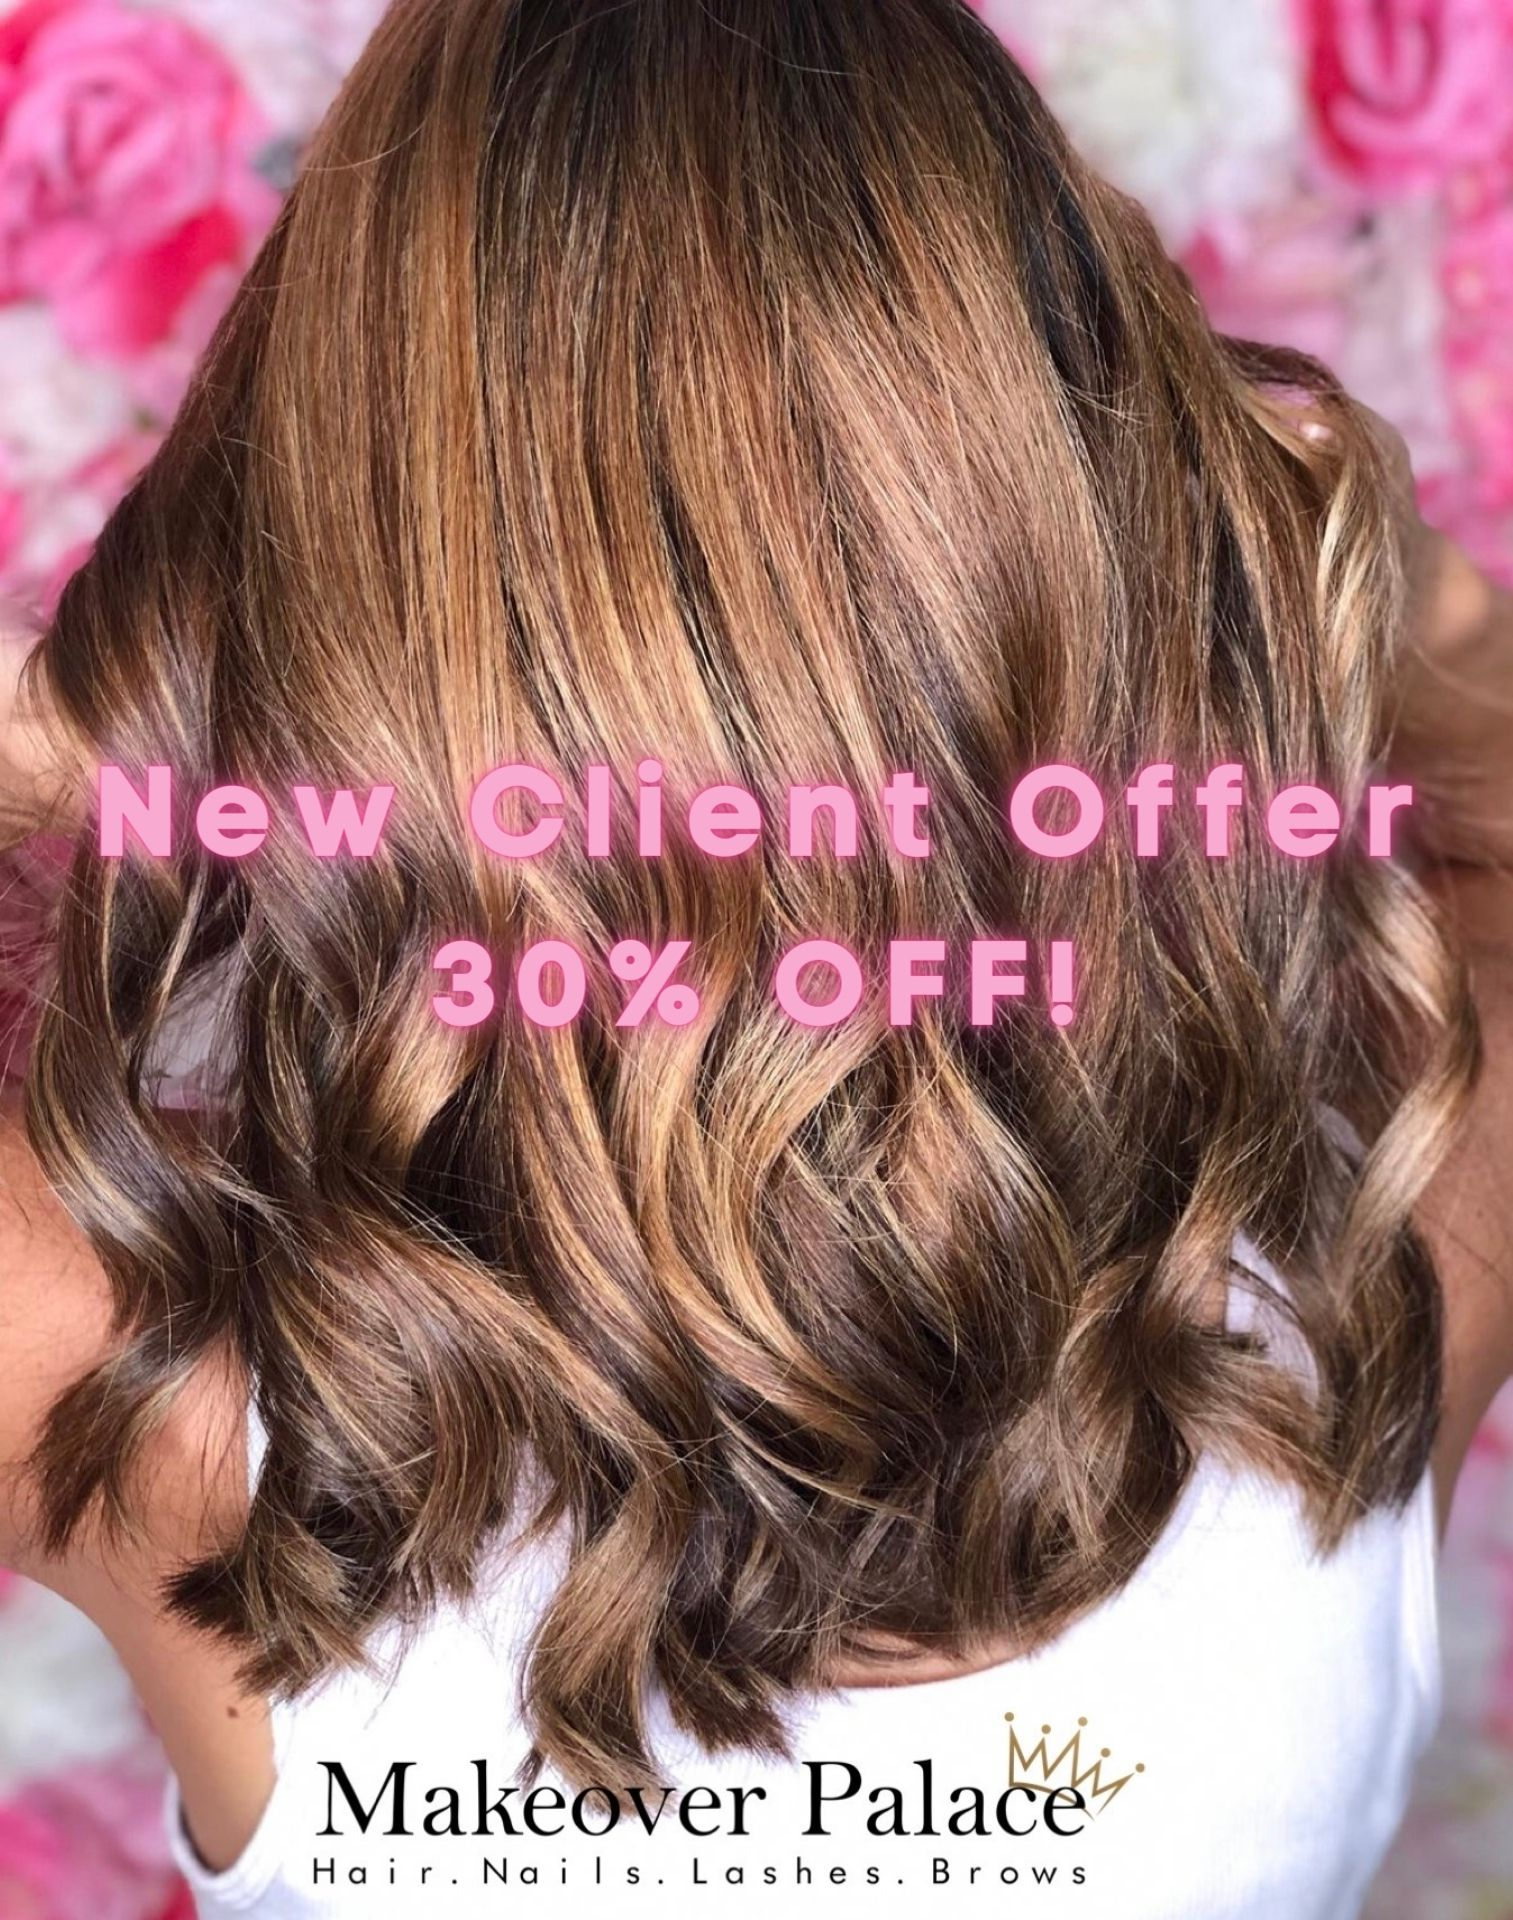 New Client Offer – 30% OFF!